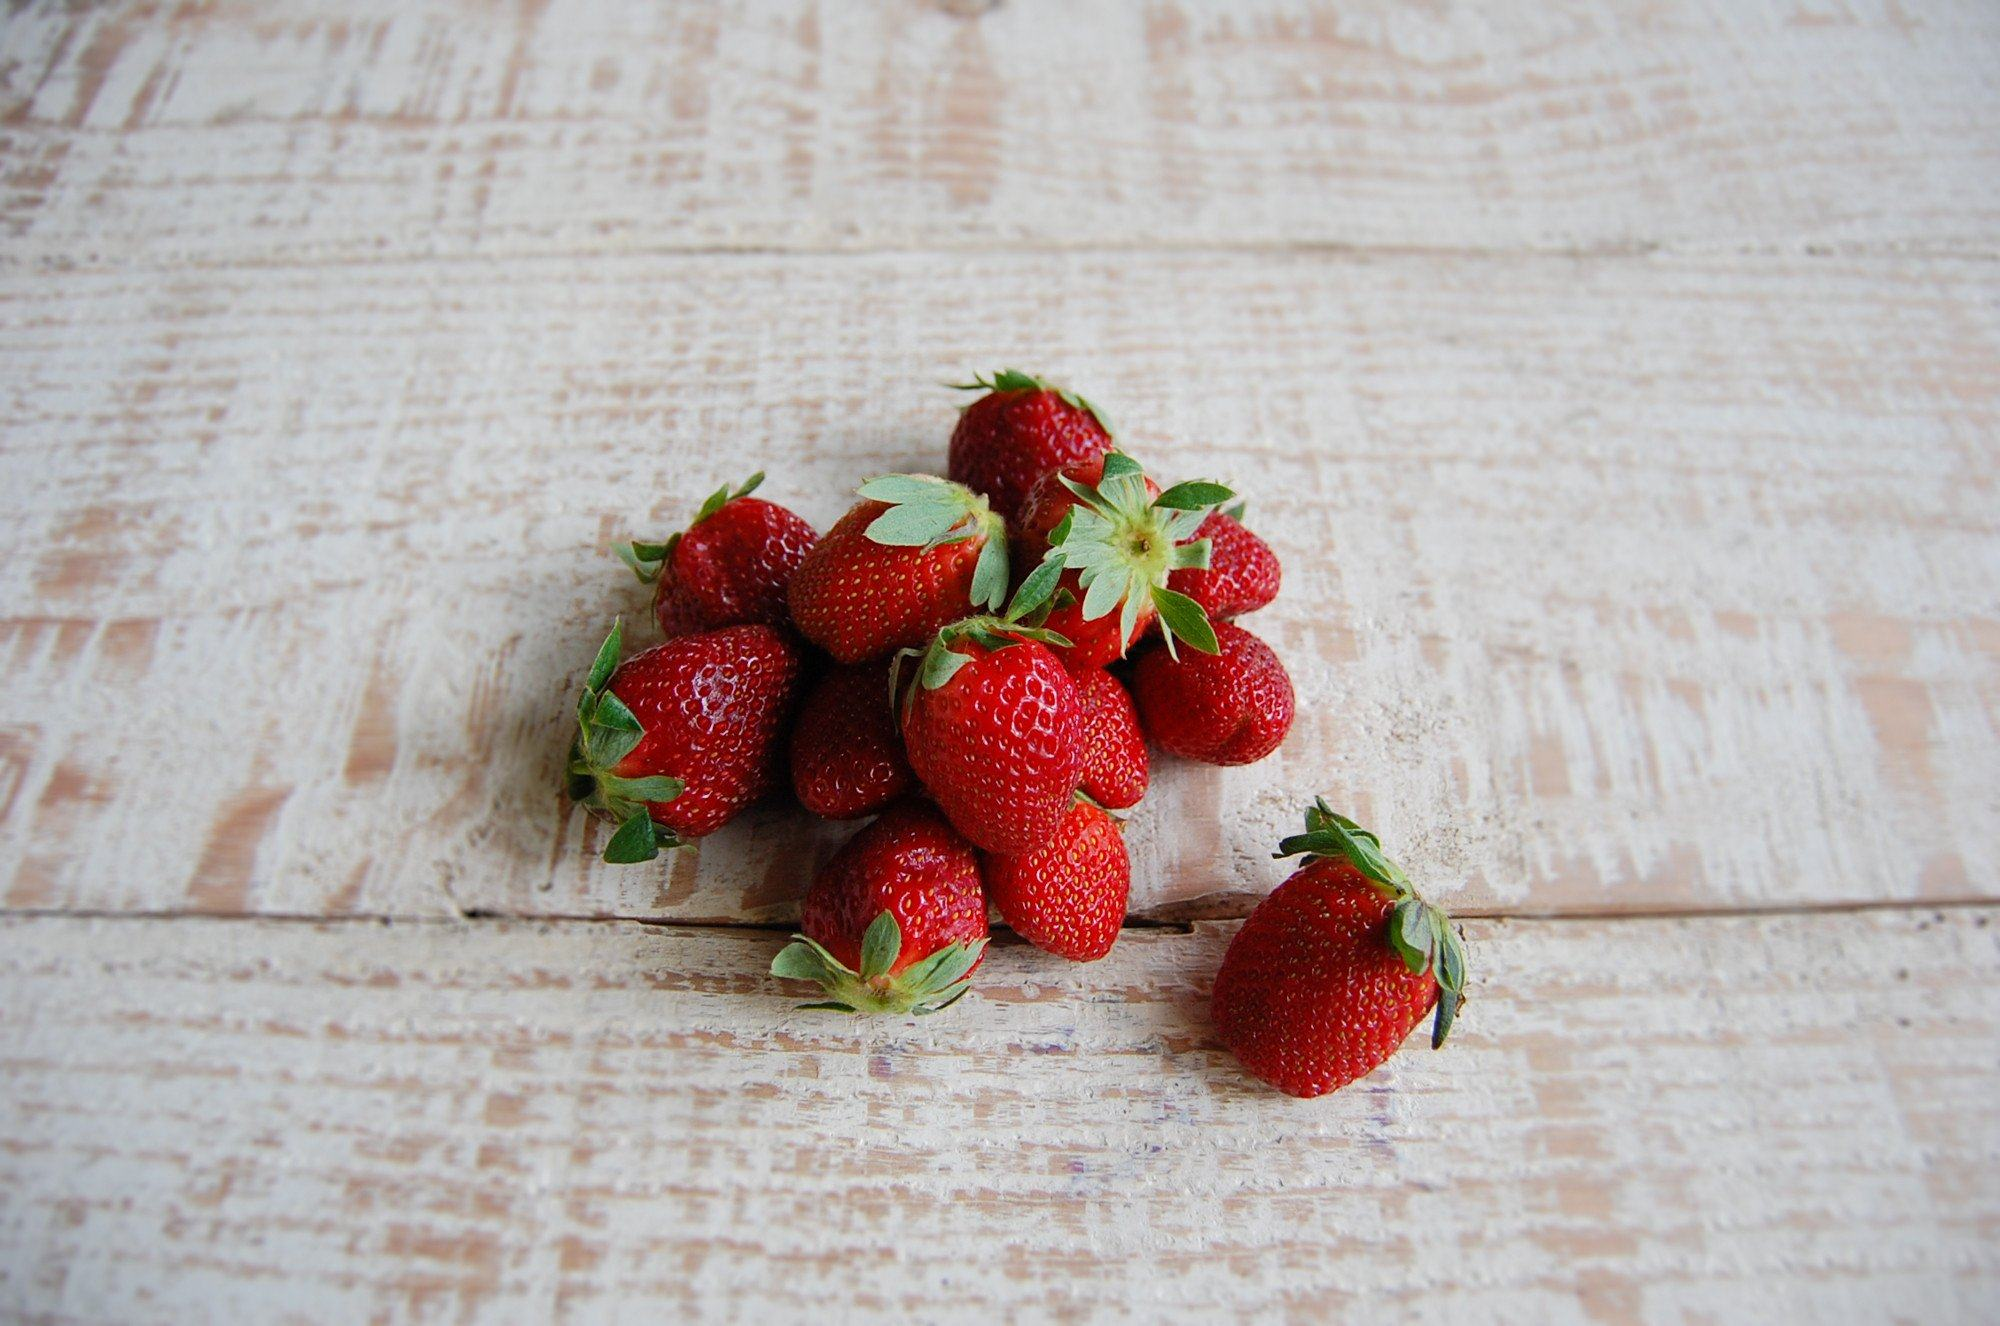 Strawberries (new season)